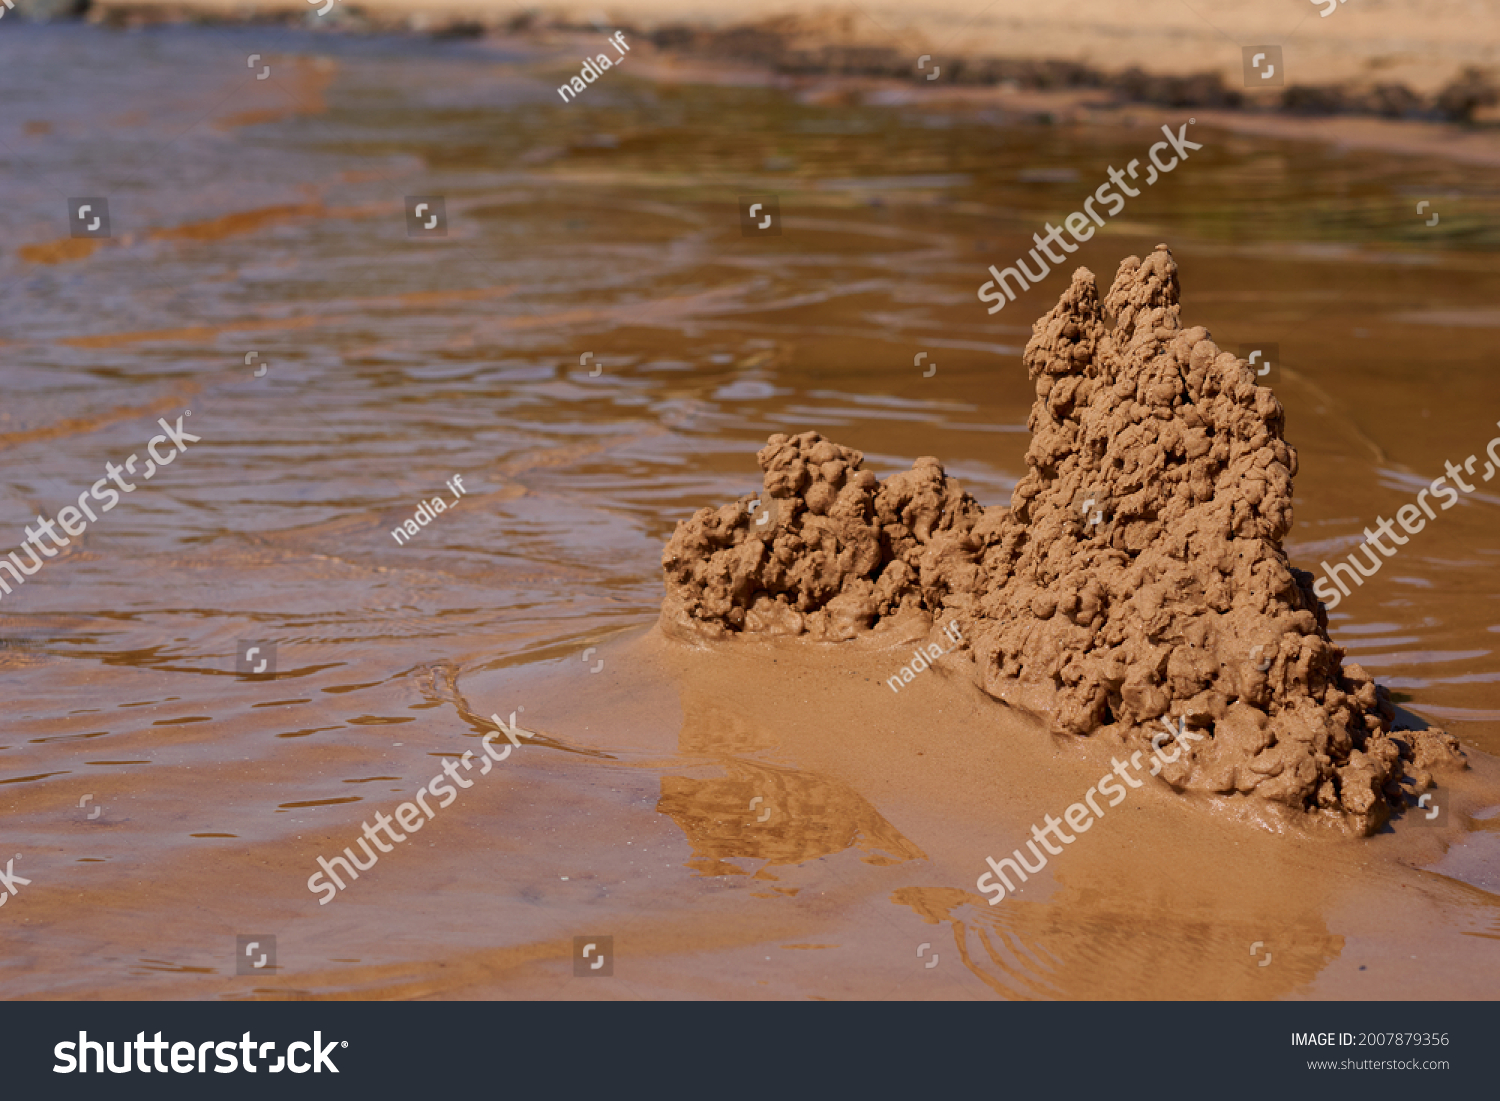 sand castle on the beach near the water. High quality photo #2007879356